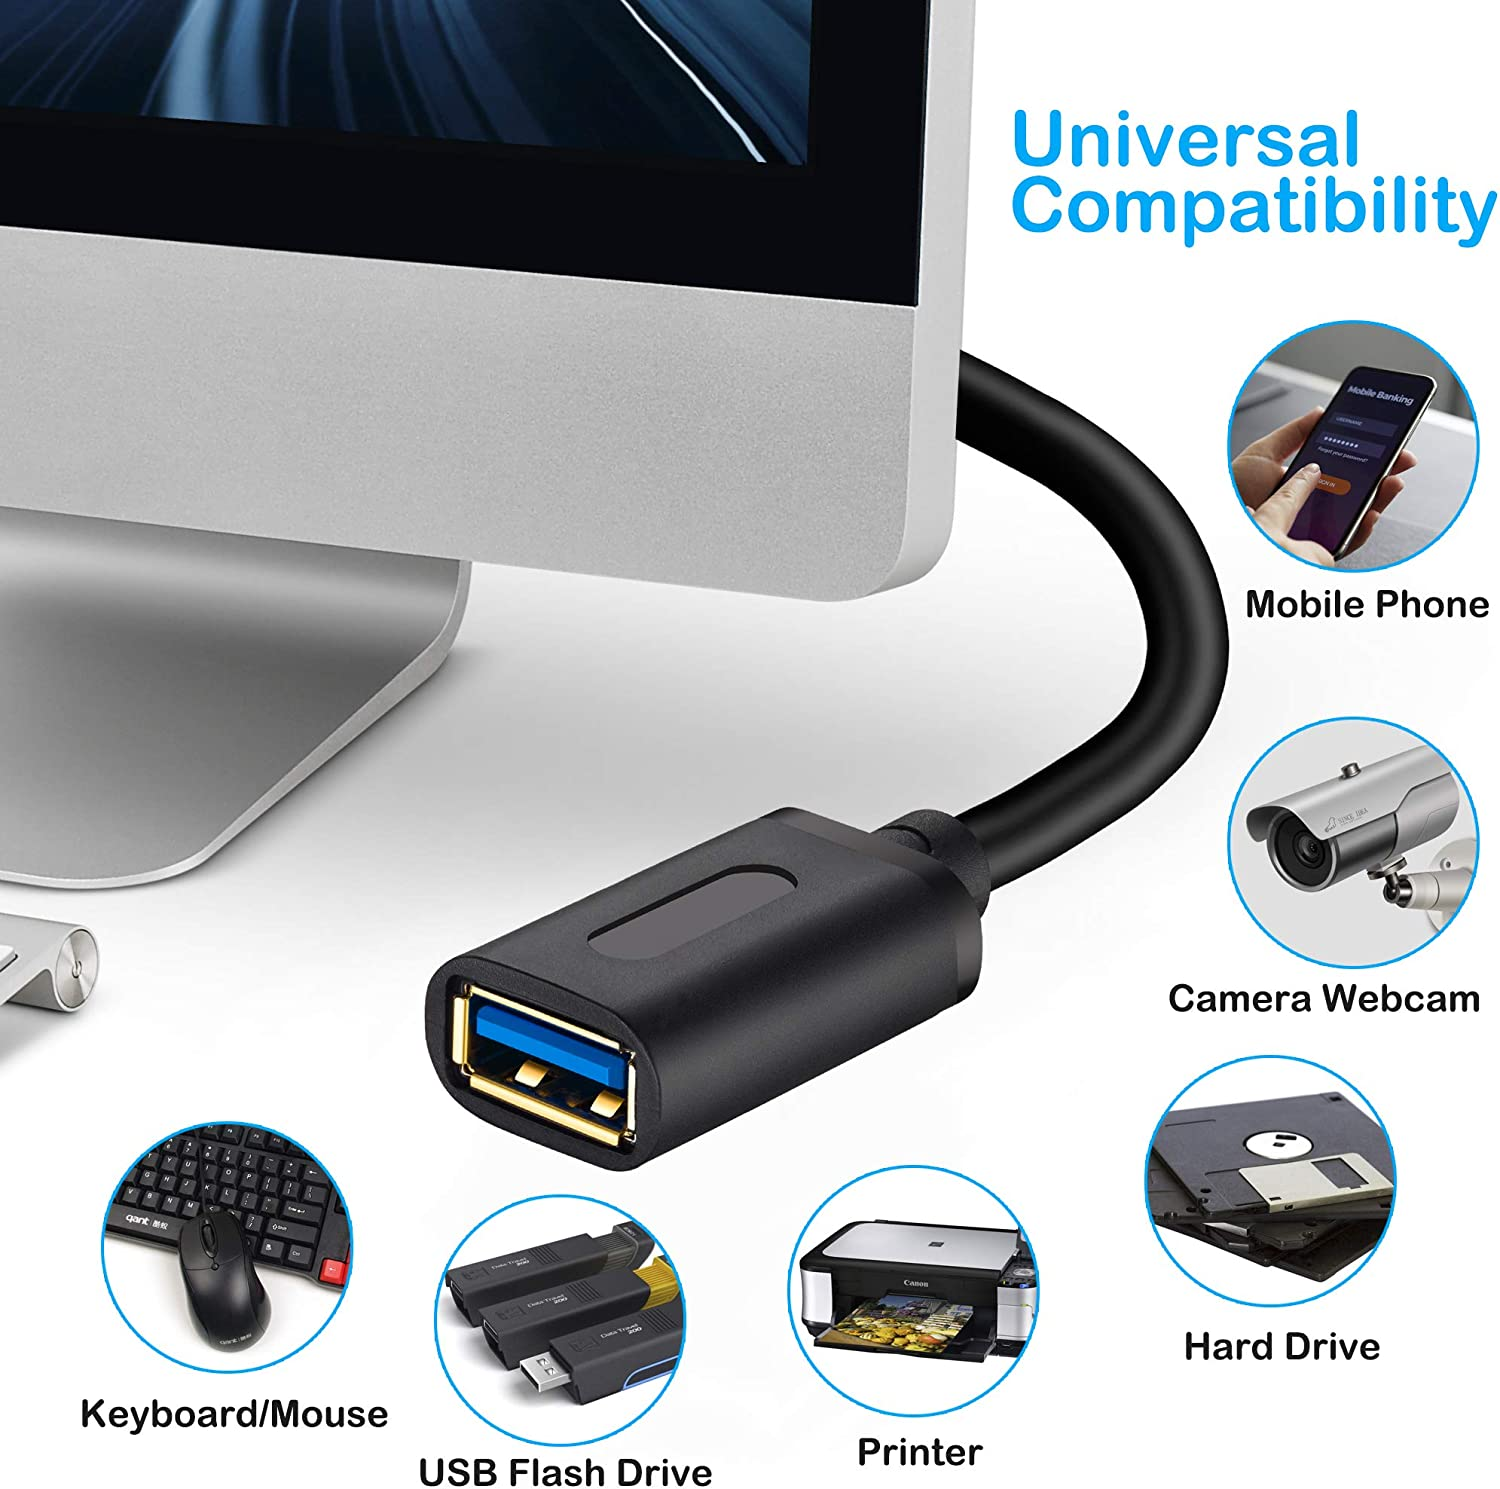 USB Flash Drive Hard Drive Xbox USB 3.0 High Speed Extender Cord Type A Male to A Female for Playstation USB 3.0 Extension Cable 3ft 3Ft-2Pack Card Reader,Scanner,Printer,Keyboard